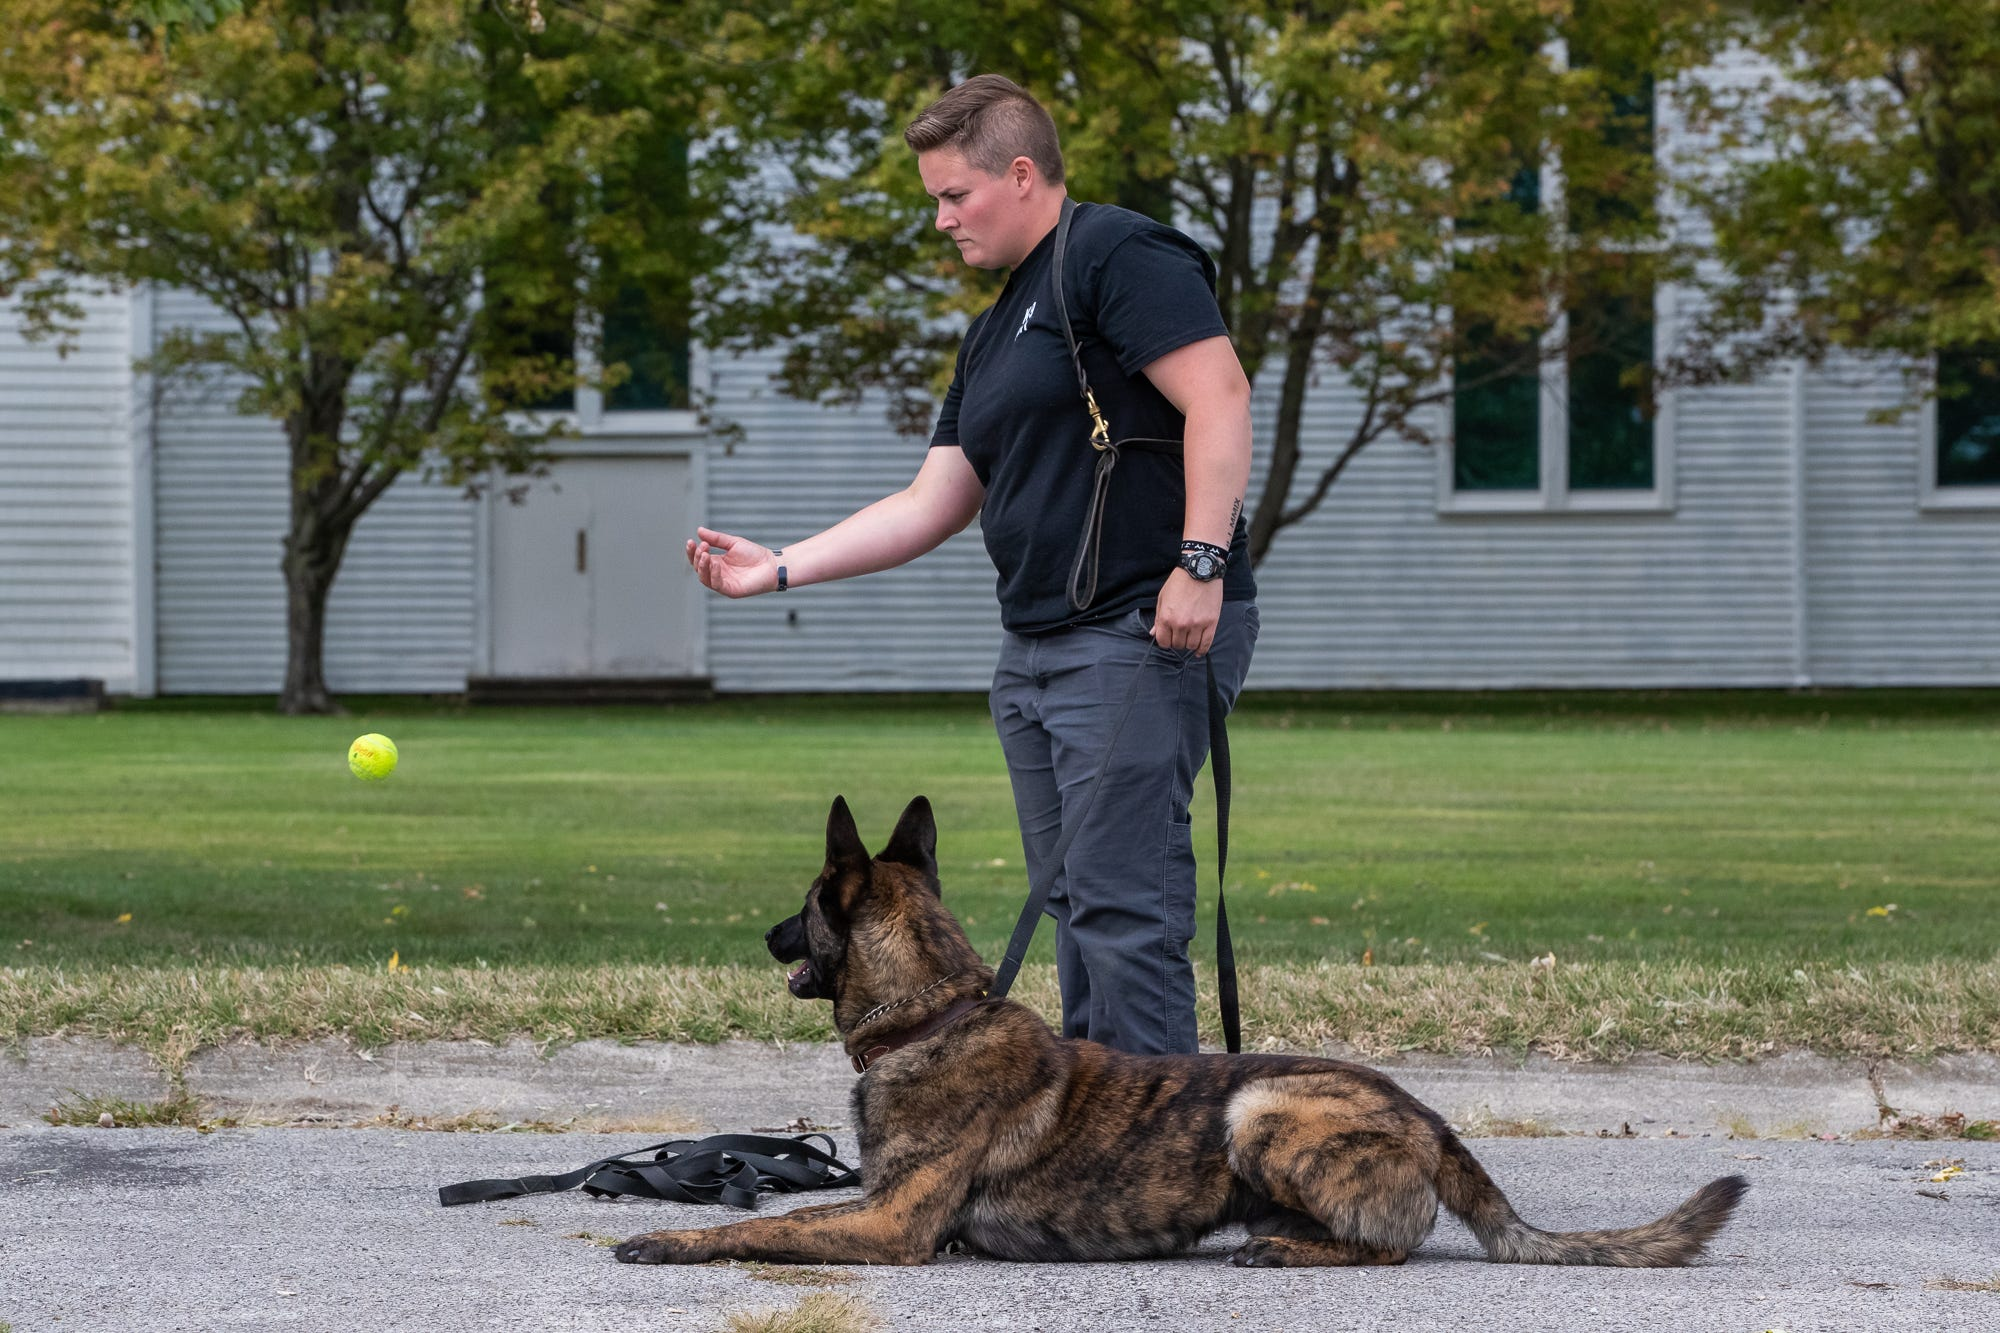 Anna Wicker, of the Murray Kentucky Police Department, works with her Dutch Shepherd K9, Ringo, on obedience at Vohne Liche Kennels on Wednesday, Sept. 23, 2020.